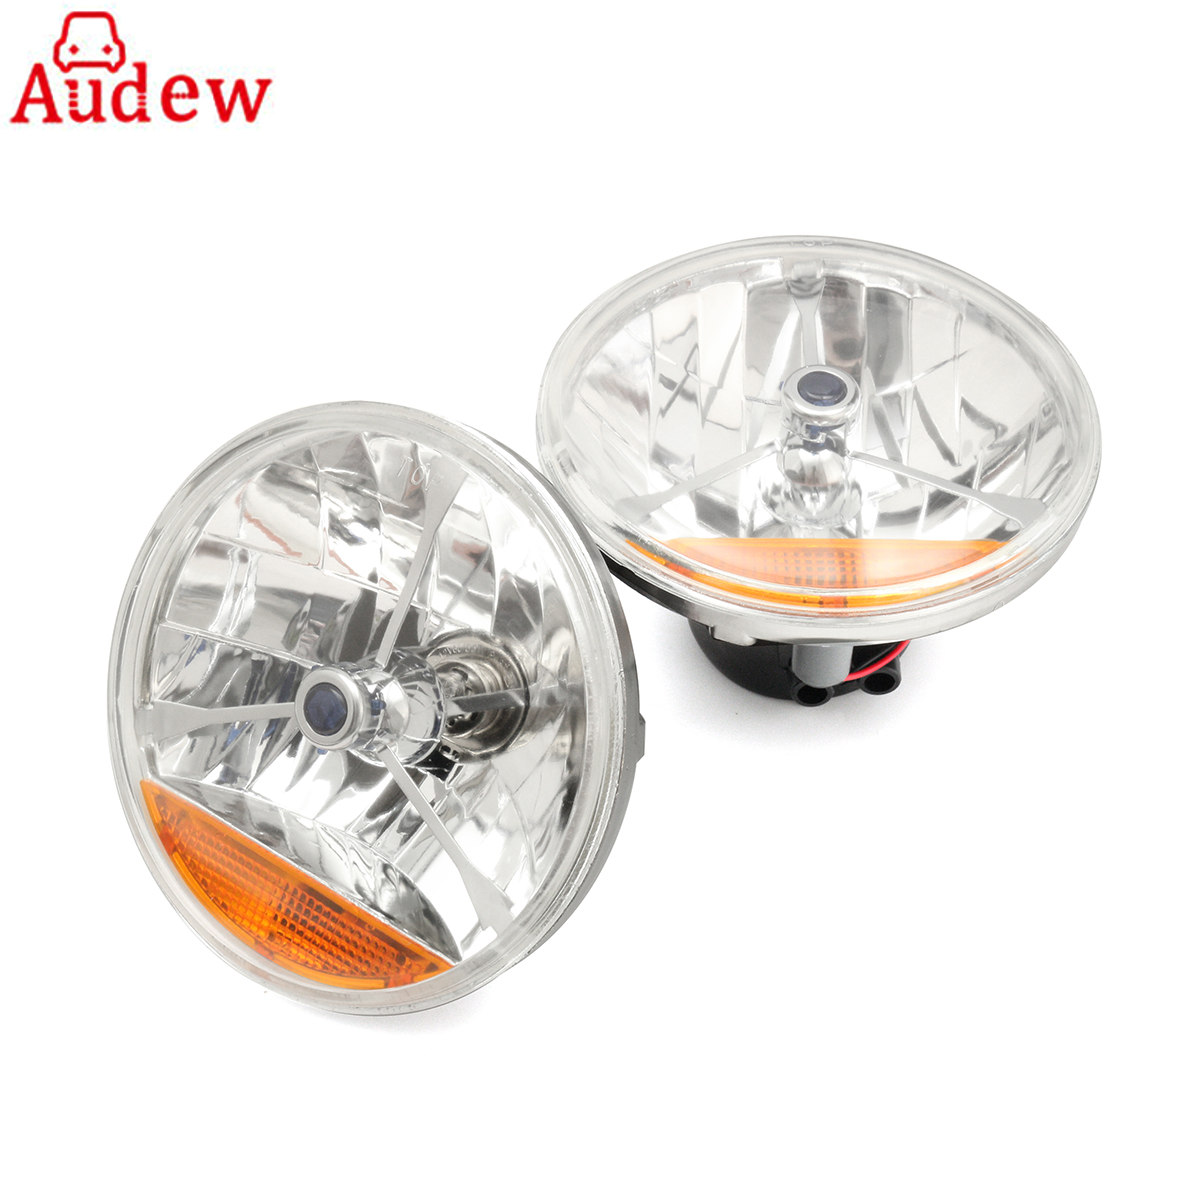 2Pcs 7 Inch H4 LED Car Headlight Fog Light  For Chevy/Ford Motorcycle  Daytime Running Lights Truck Light Led Side Turn Signal 2014 new designer black women fsahion zipper sandals pumps sotf suede leather shoes commodities trading platform cheap sandals